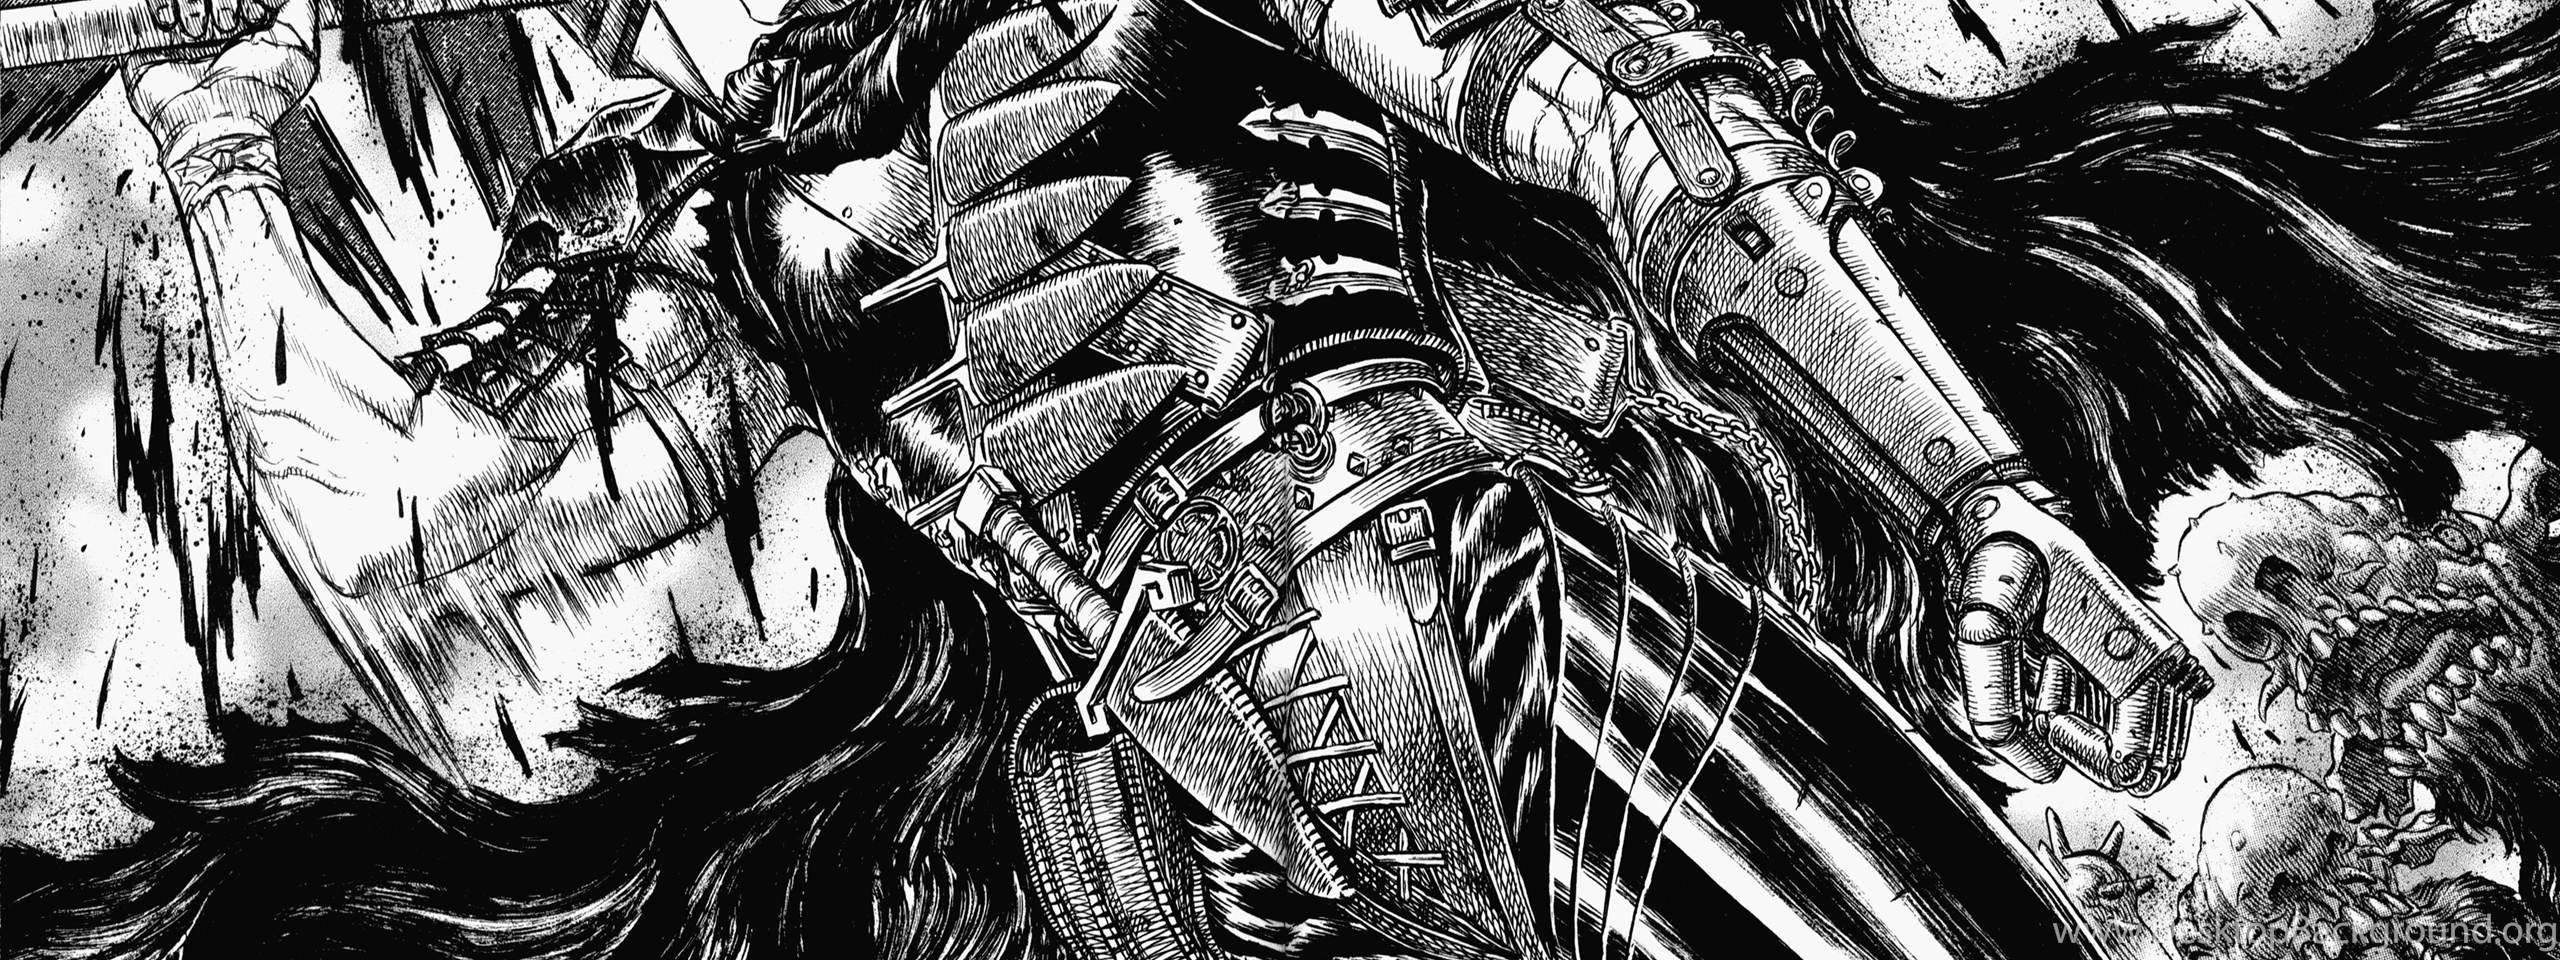 Berserk Iphone Wallpaper Berserk Wallpapers Desktop Background